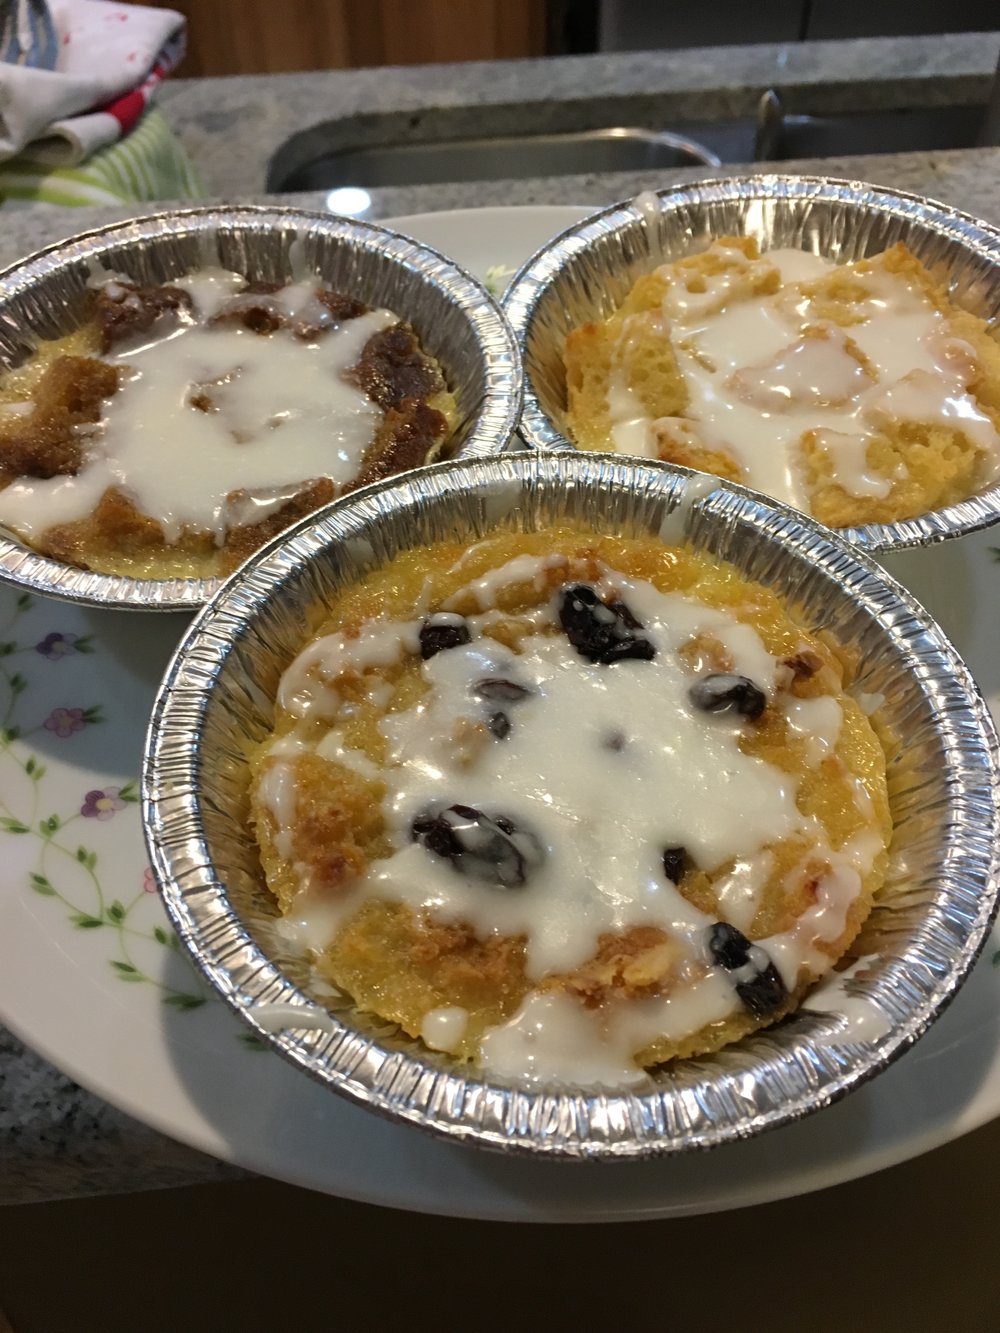 VARIETY FLAVOR BREAD PUDDING